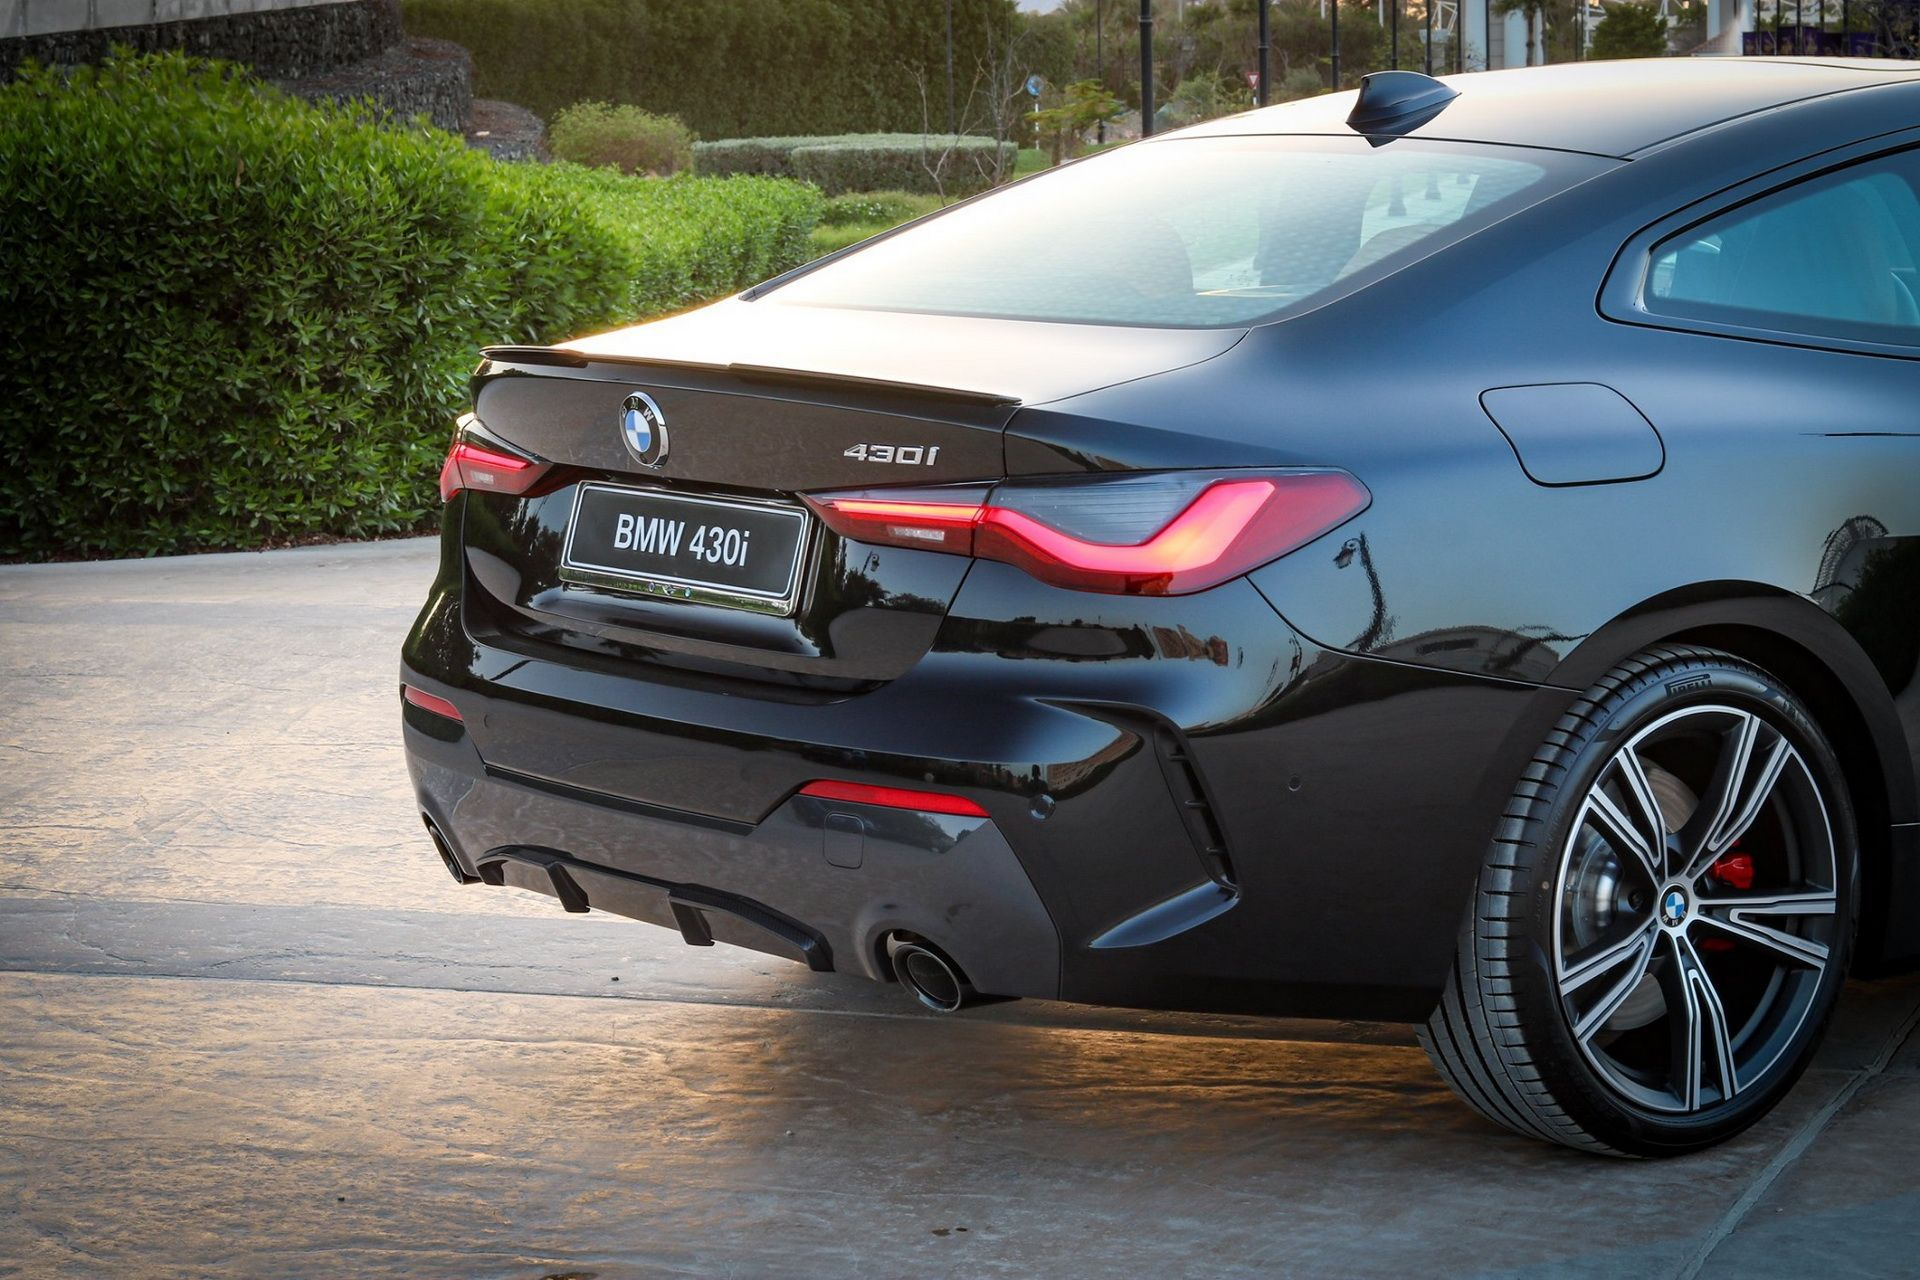 2021_BMW_4-Series_Coupe_Dark_Edition_UAE_0013